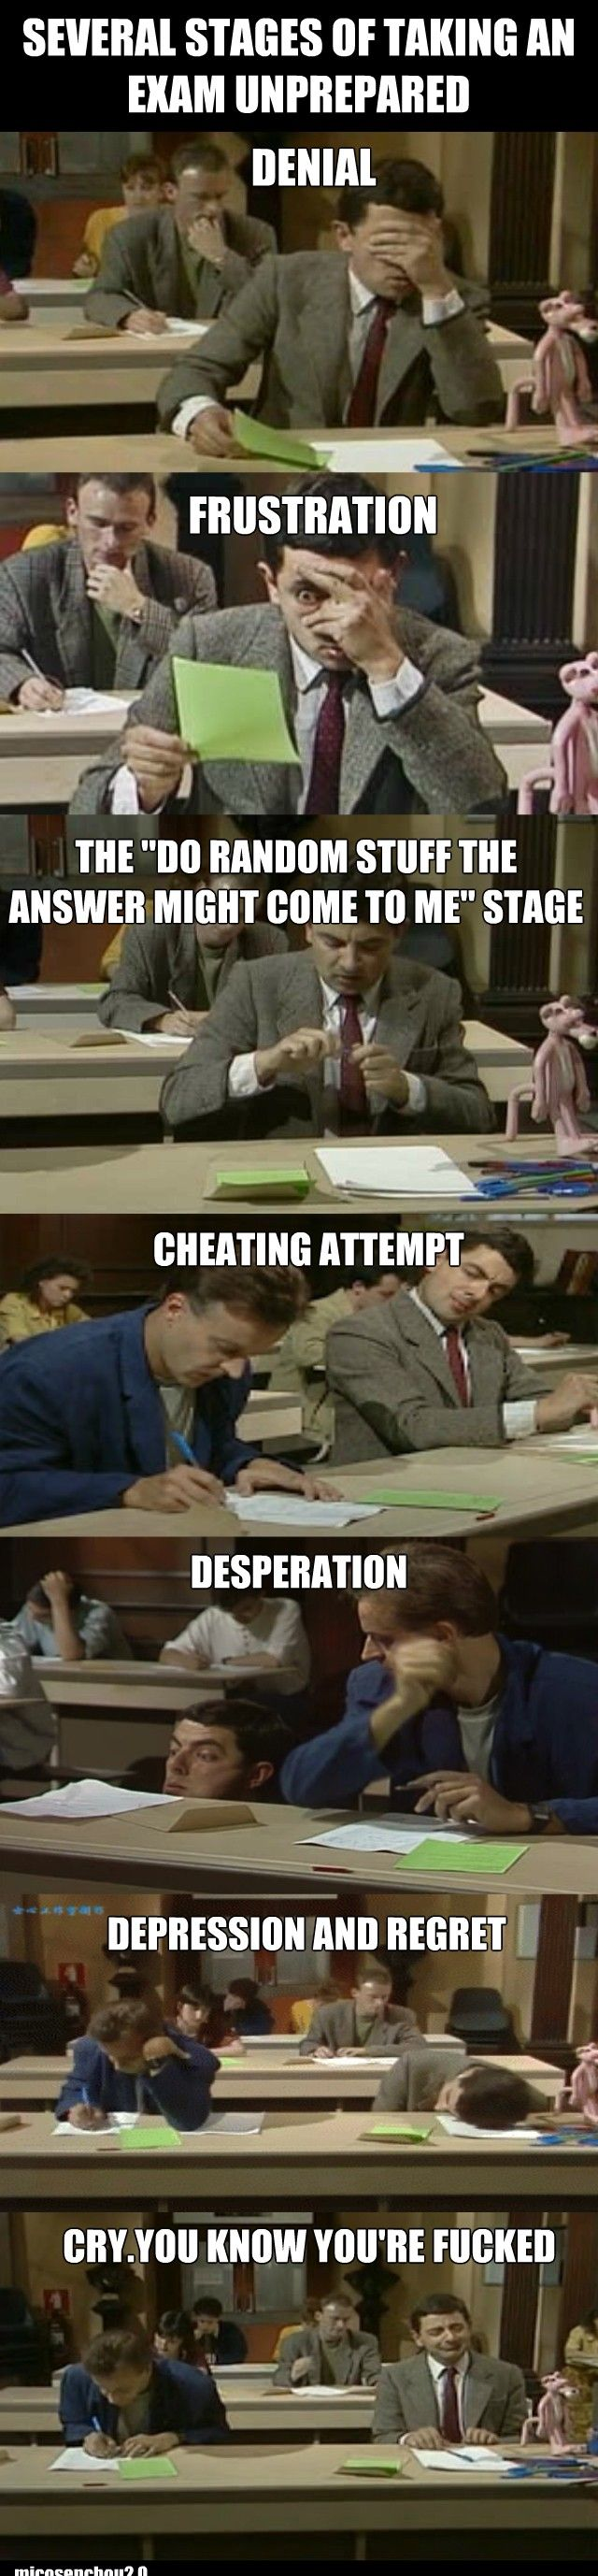 The several stages of taking an exam unprepared - http://www.jokideo.com/several-stages-taking-exam-unprepared/